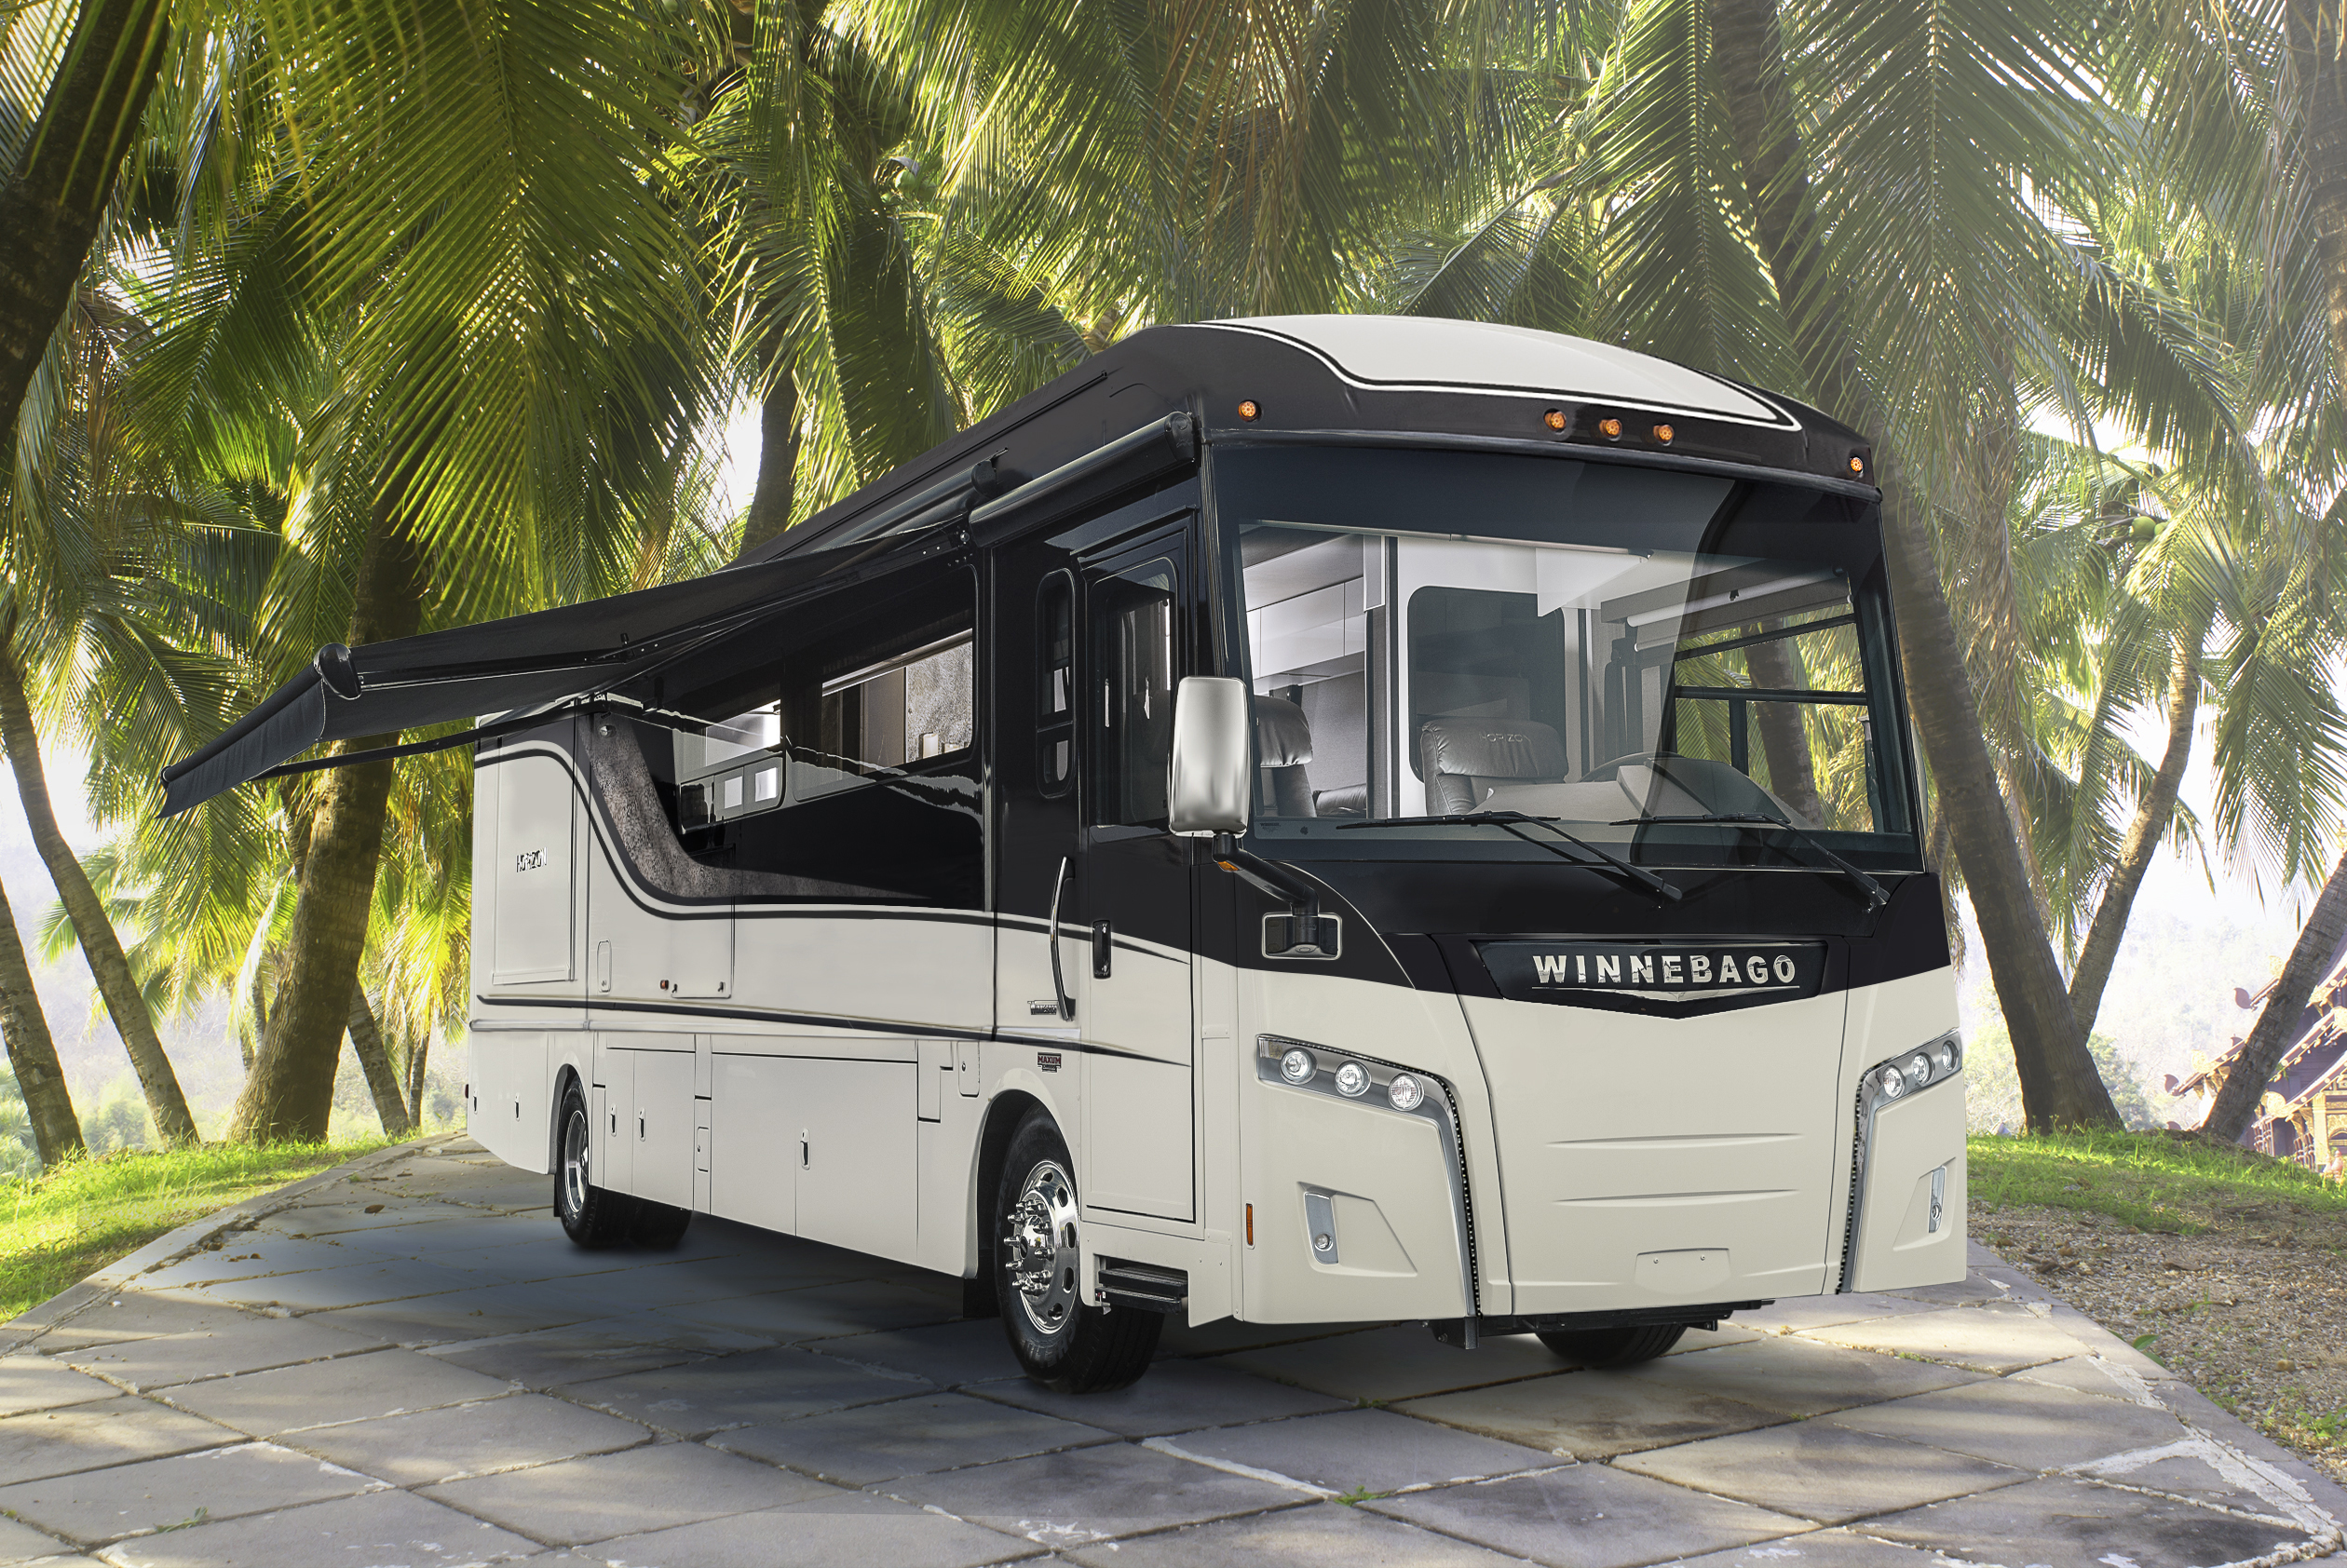 Winnebago Horizon | A Fresh Looking Diesel Pusher RV